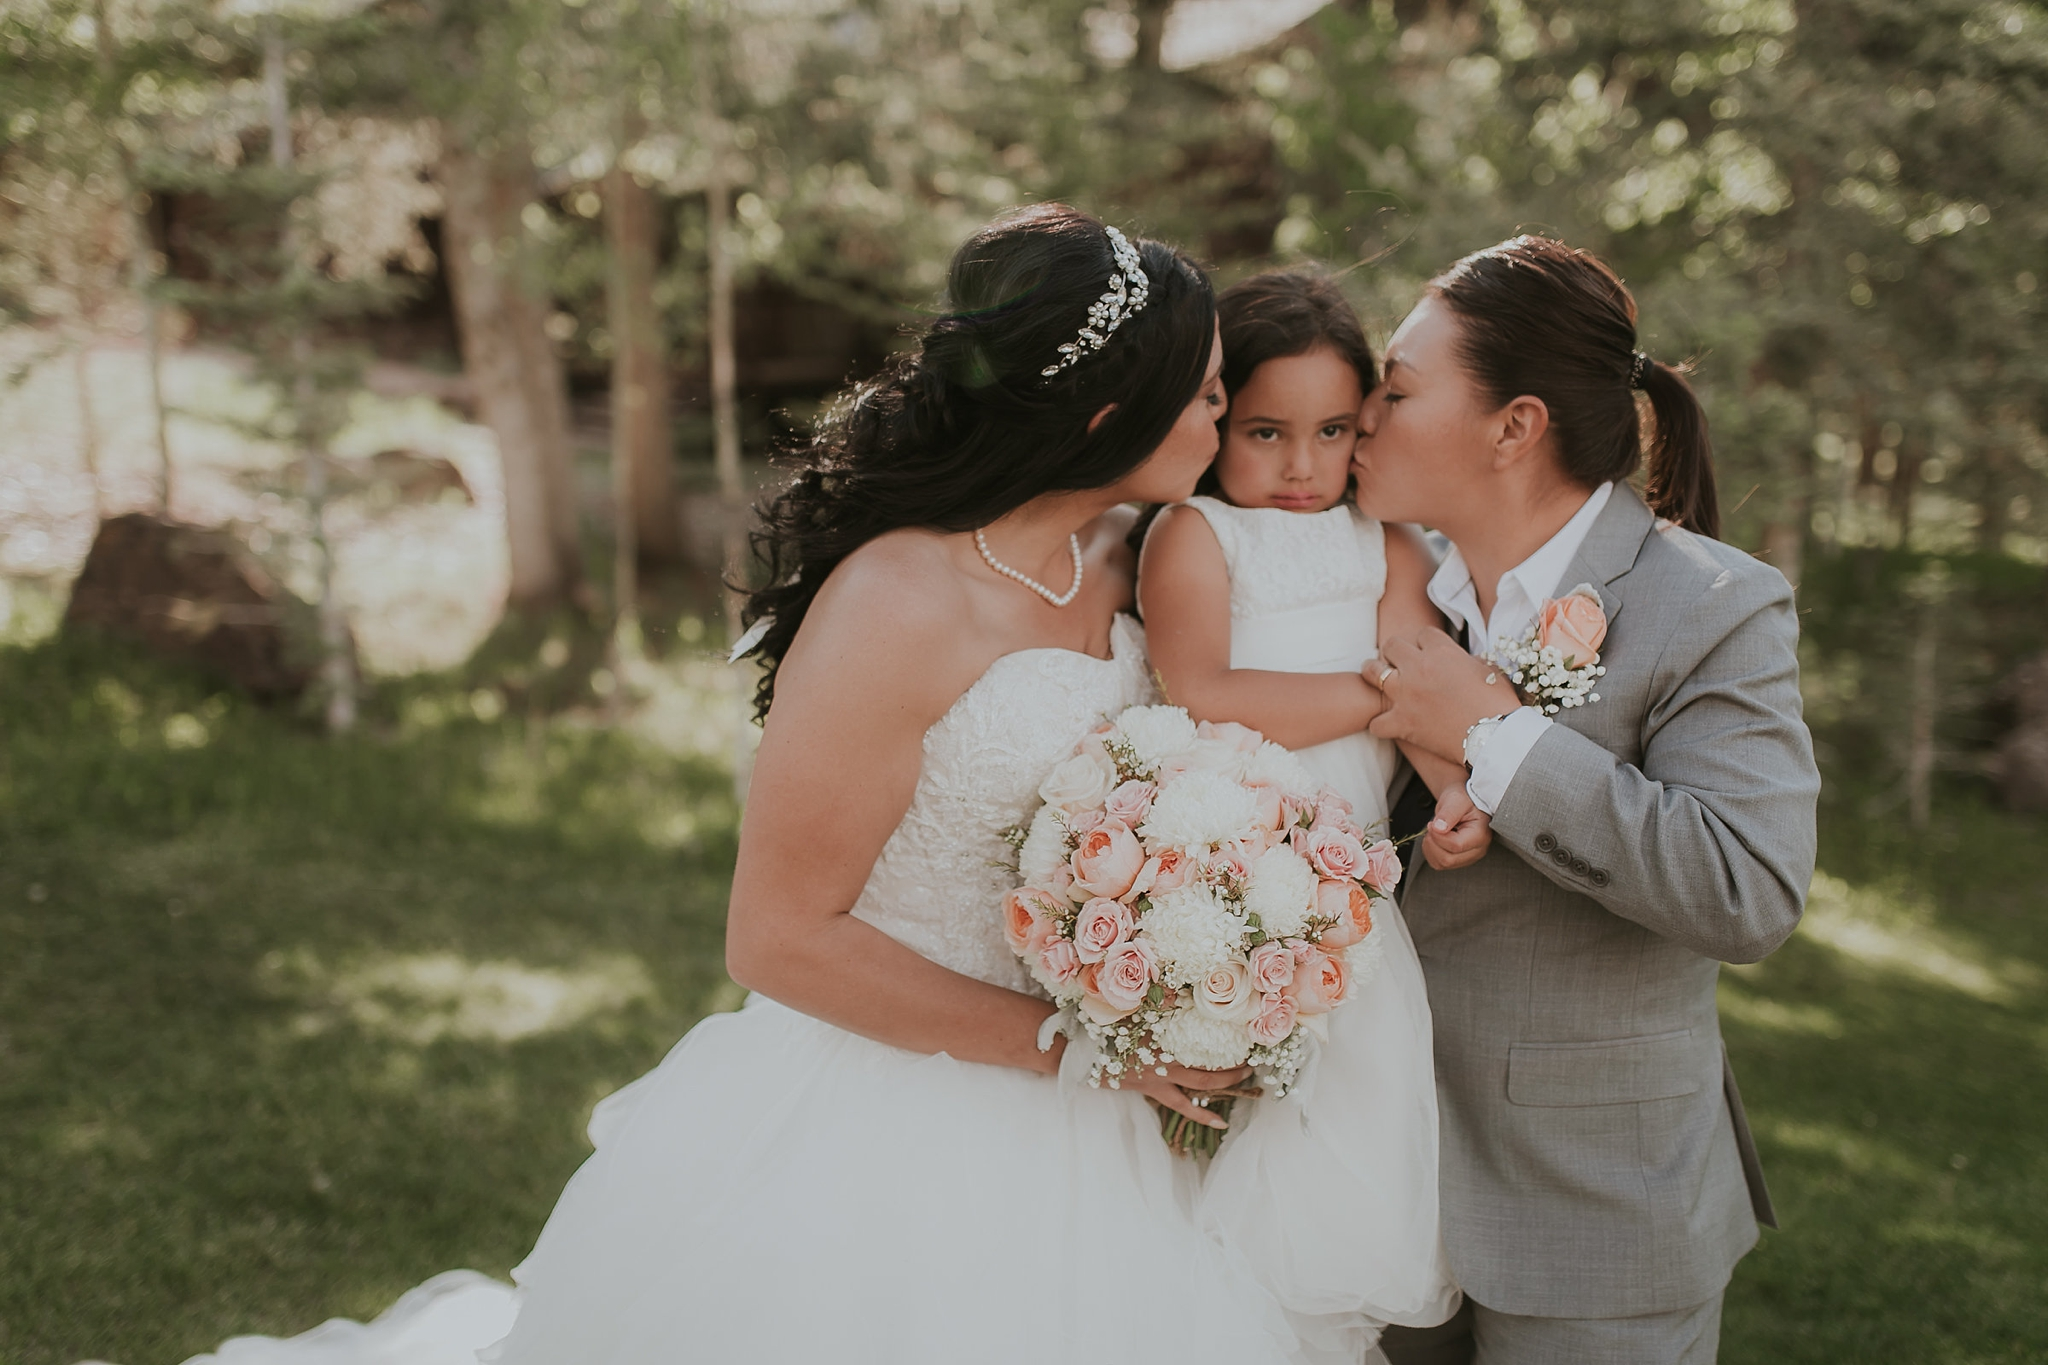 Alicia+lucia+photography+-+albuquerque+wedding+photographer+-+santa+fe+wedding+photography+-+new+mexico+wedding+photographer+-+new+mexico+wedding+-+flower+girl+-+wedding+flower+girl_0087.jpg